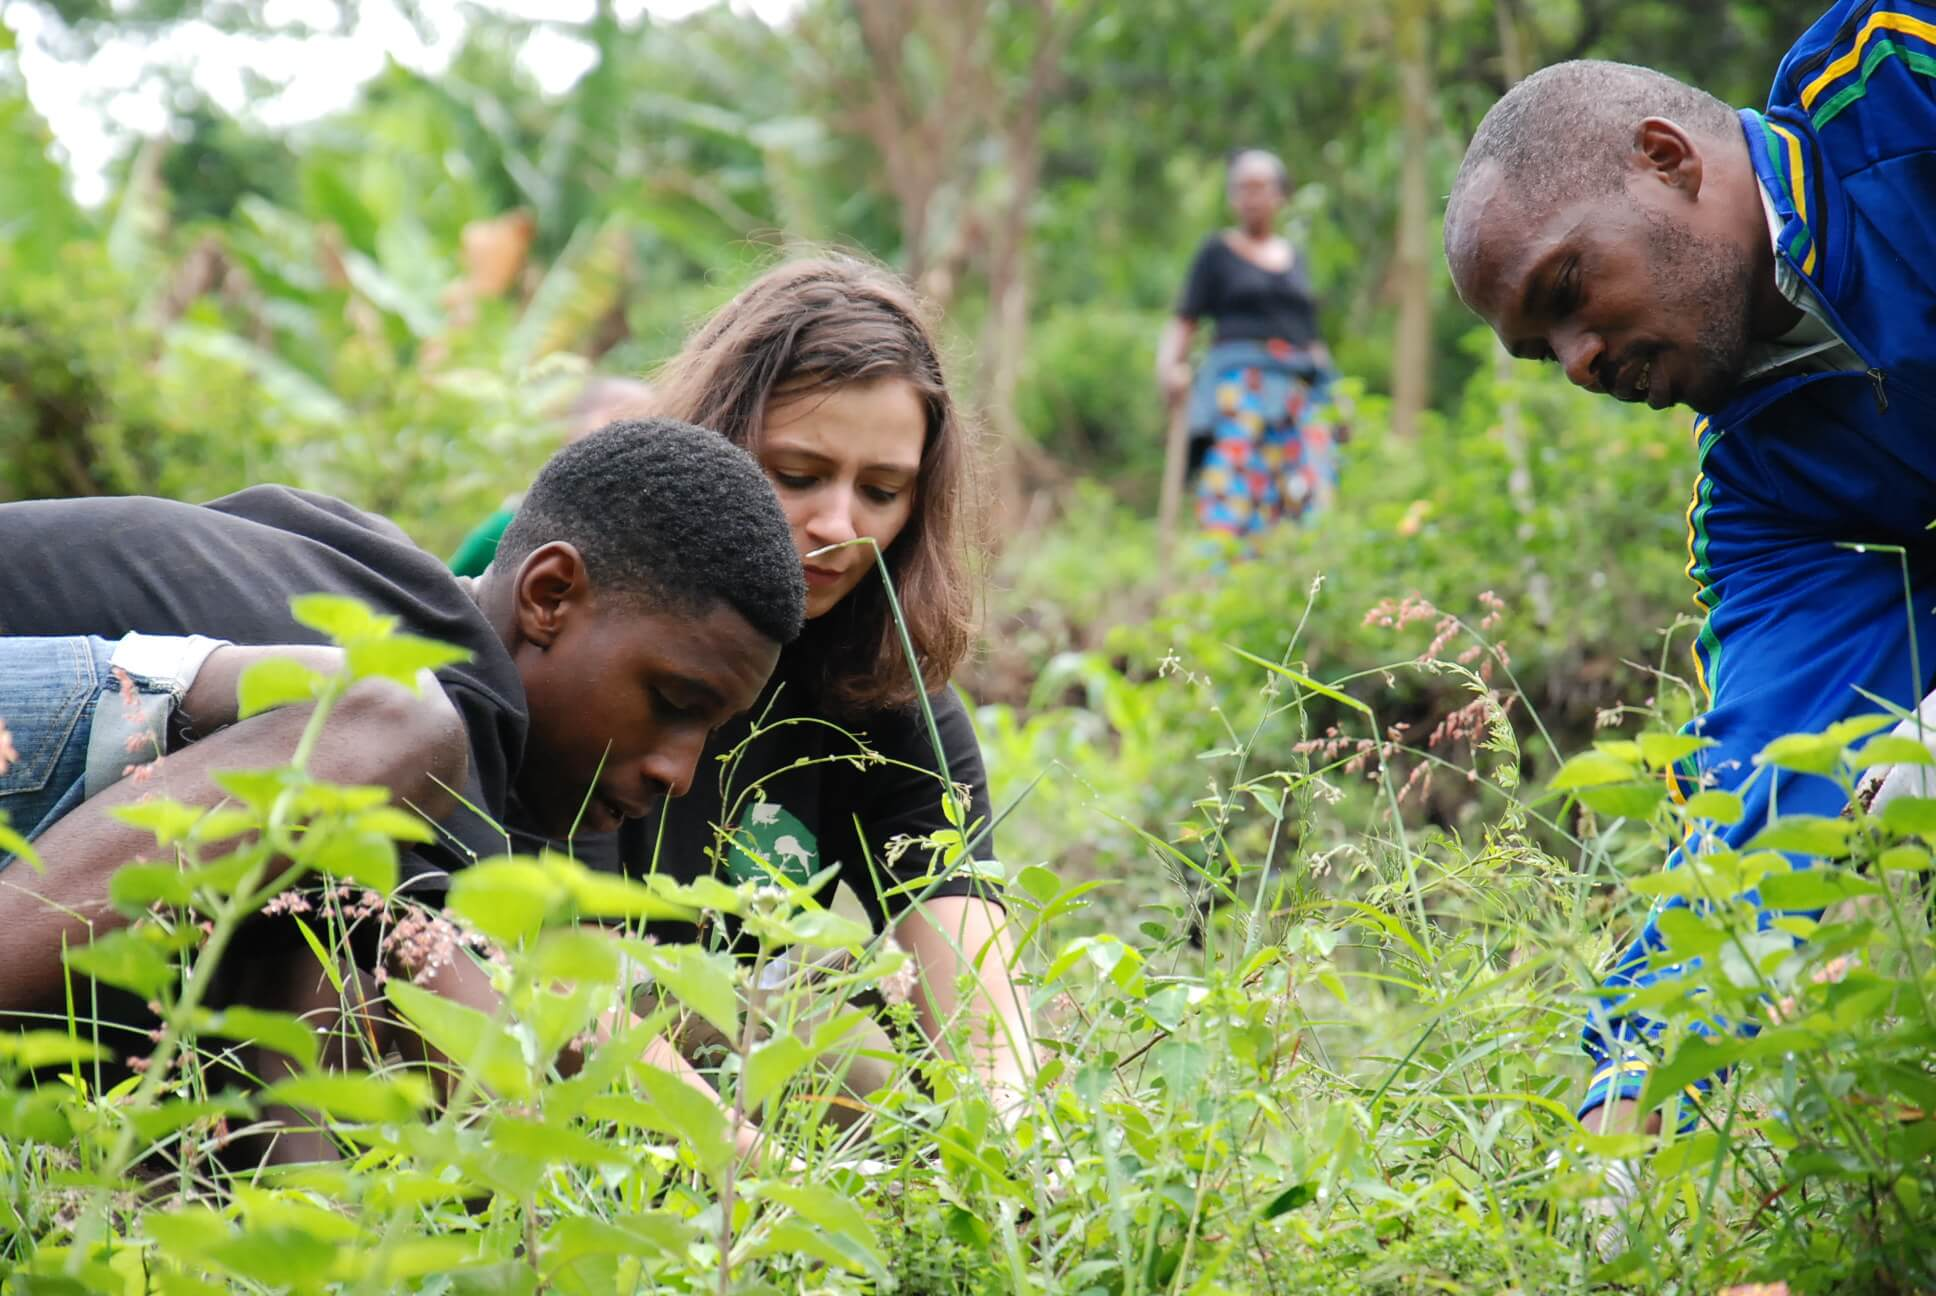 Duluti Green Foundation Tanzania plant preservation